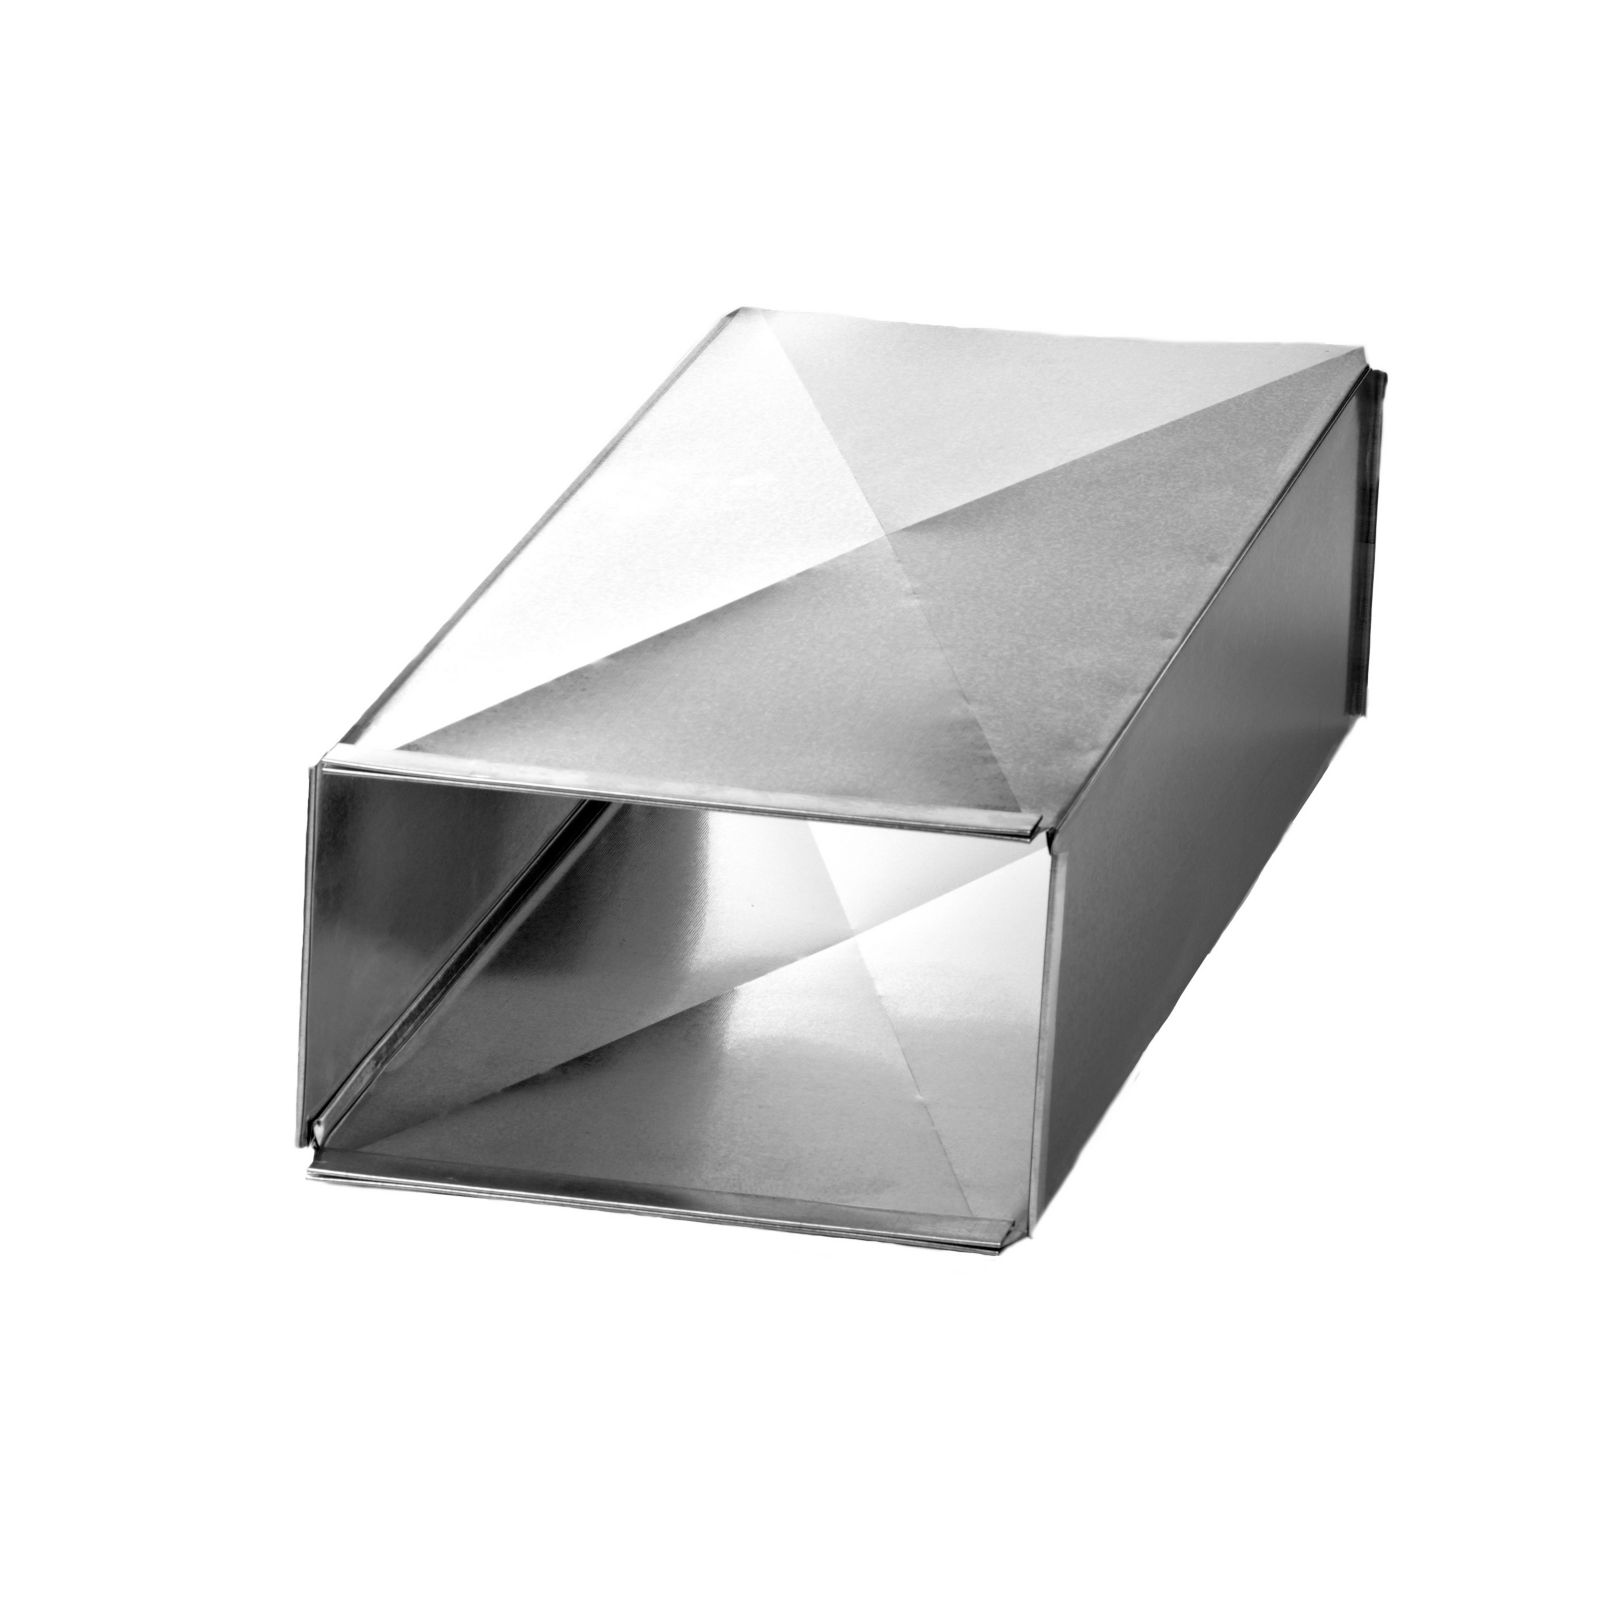 "Southwark TD60168 - Trunk Duct, 60"" X 16"" X 8"""